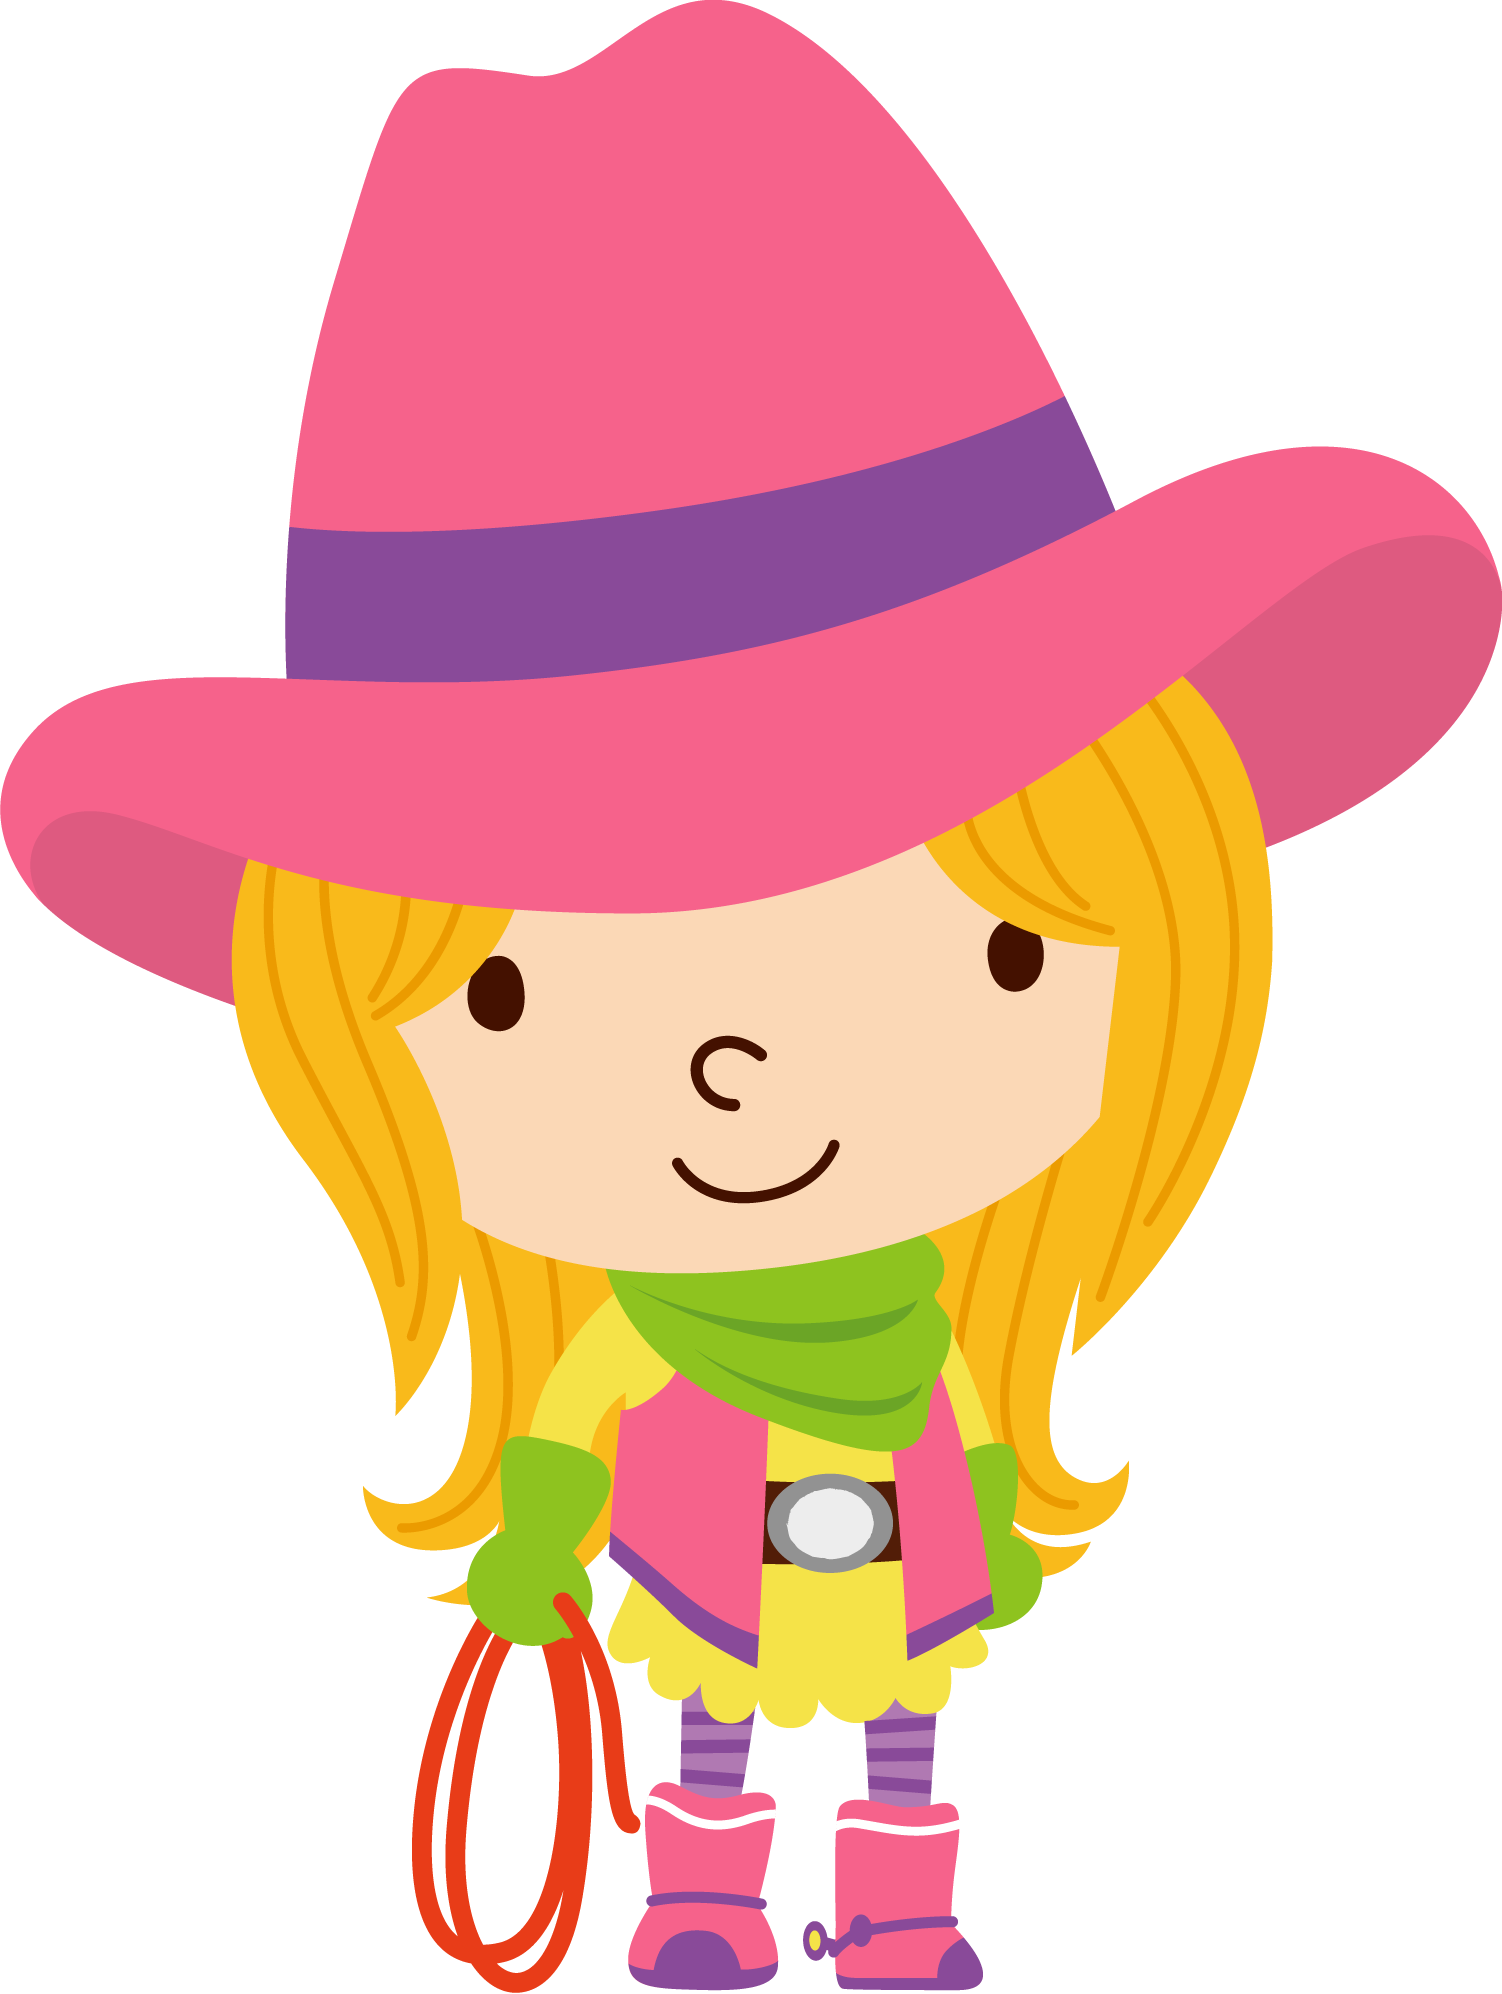 Dallas cowboys clipart pink. Cow girl our kids